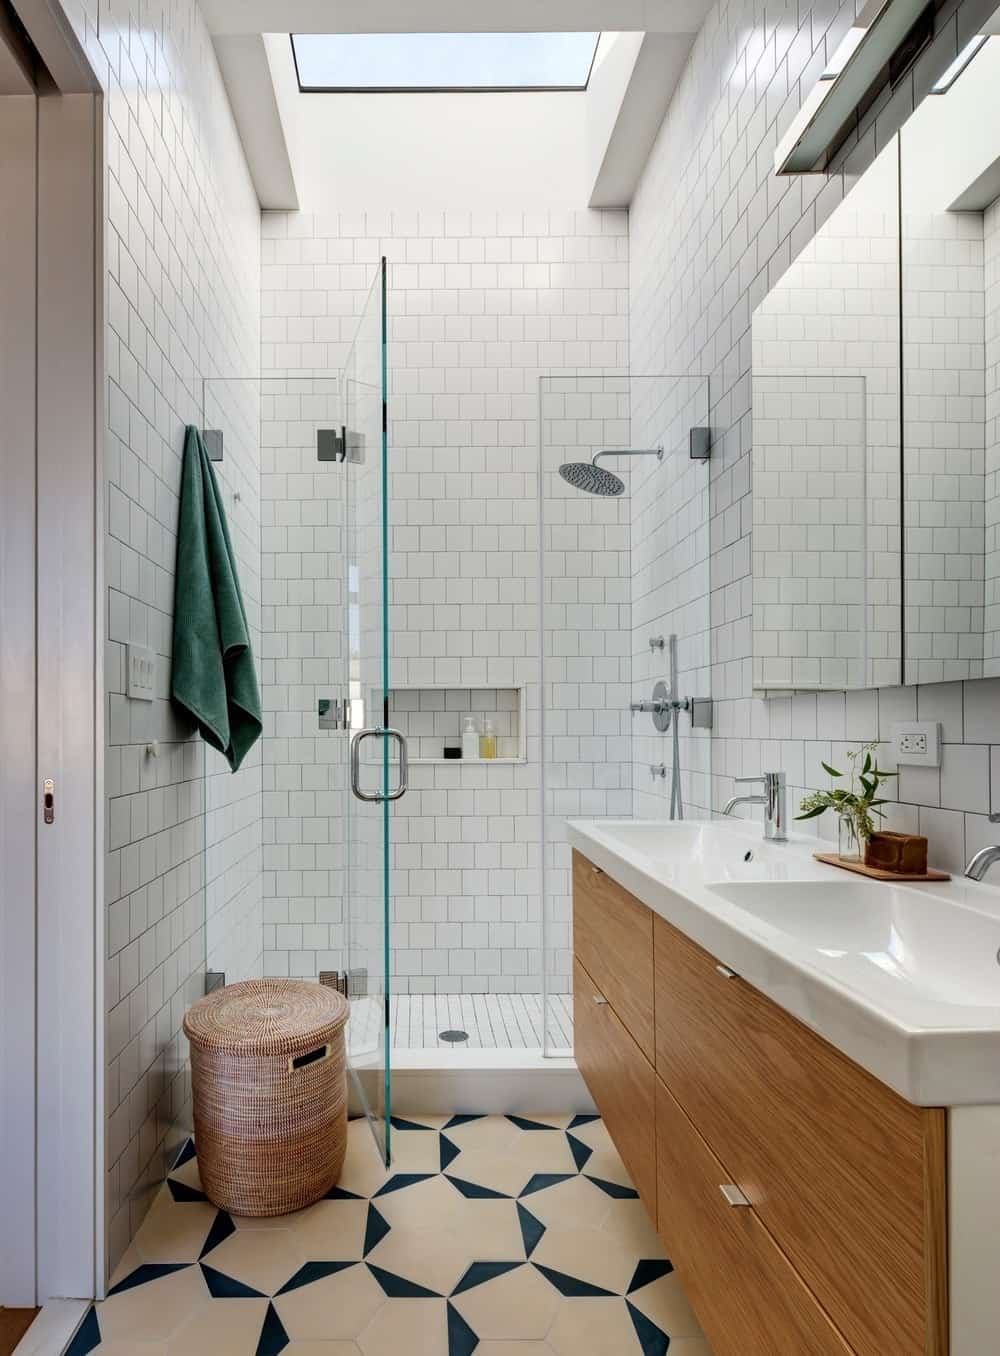 280 Master Bathrooms with Walk-In Showers for 2018